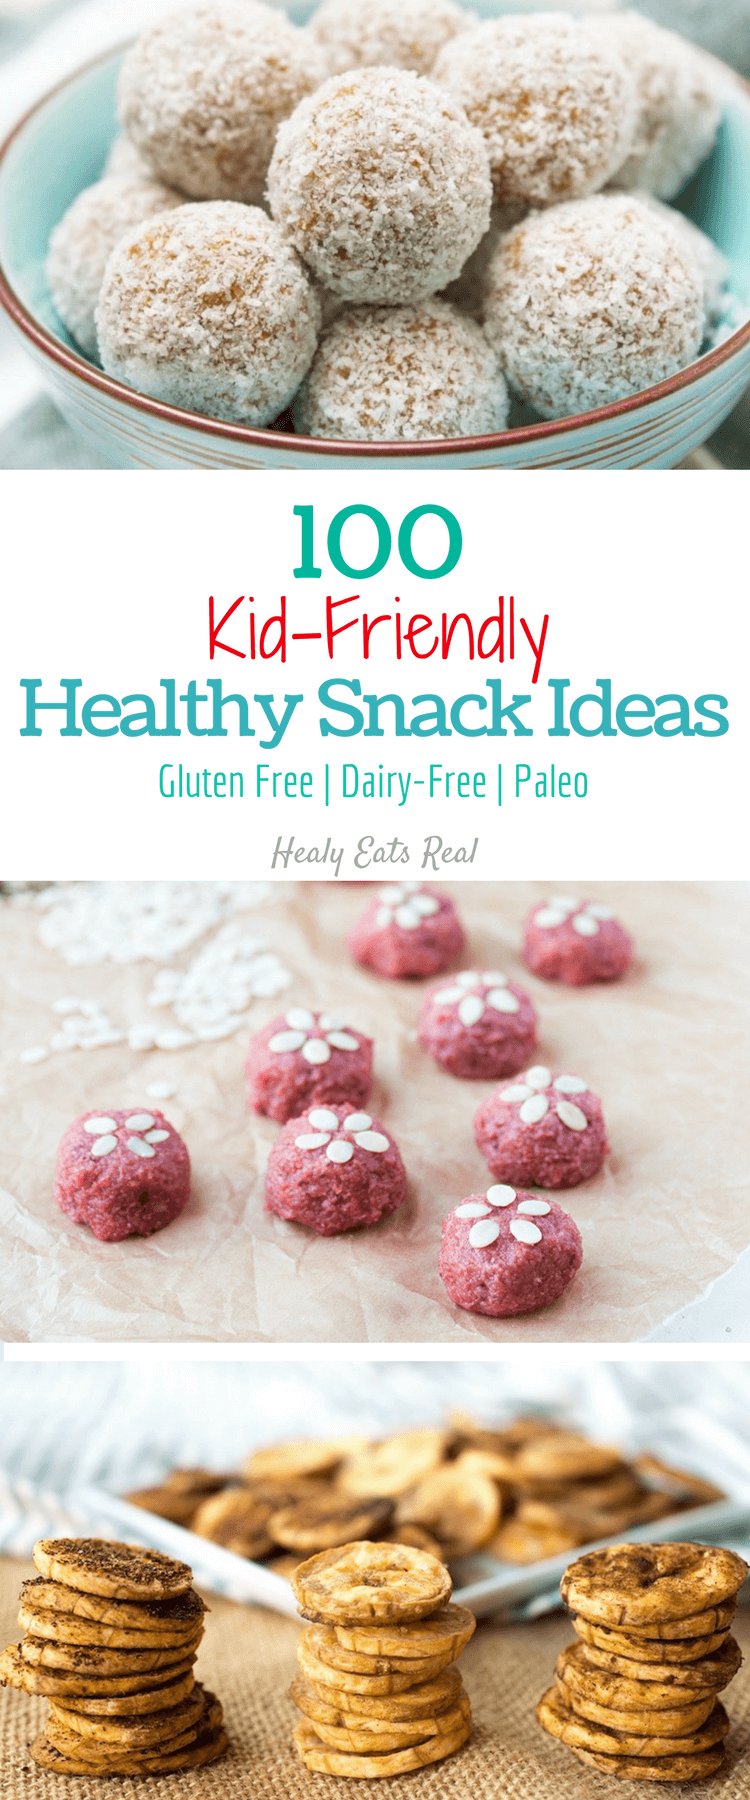 Kid Friendly Healthy Snack Ideas (Gluten Free & Paleo)